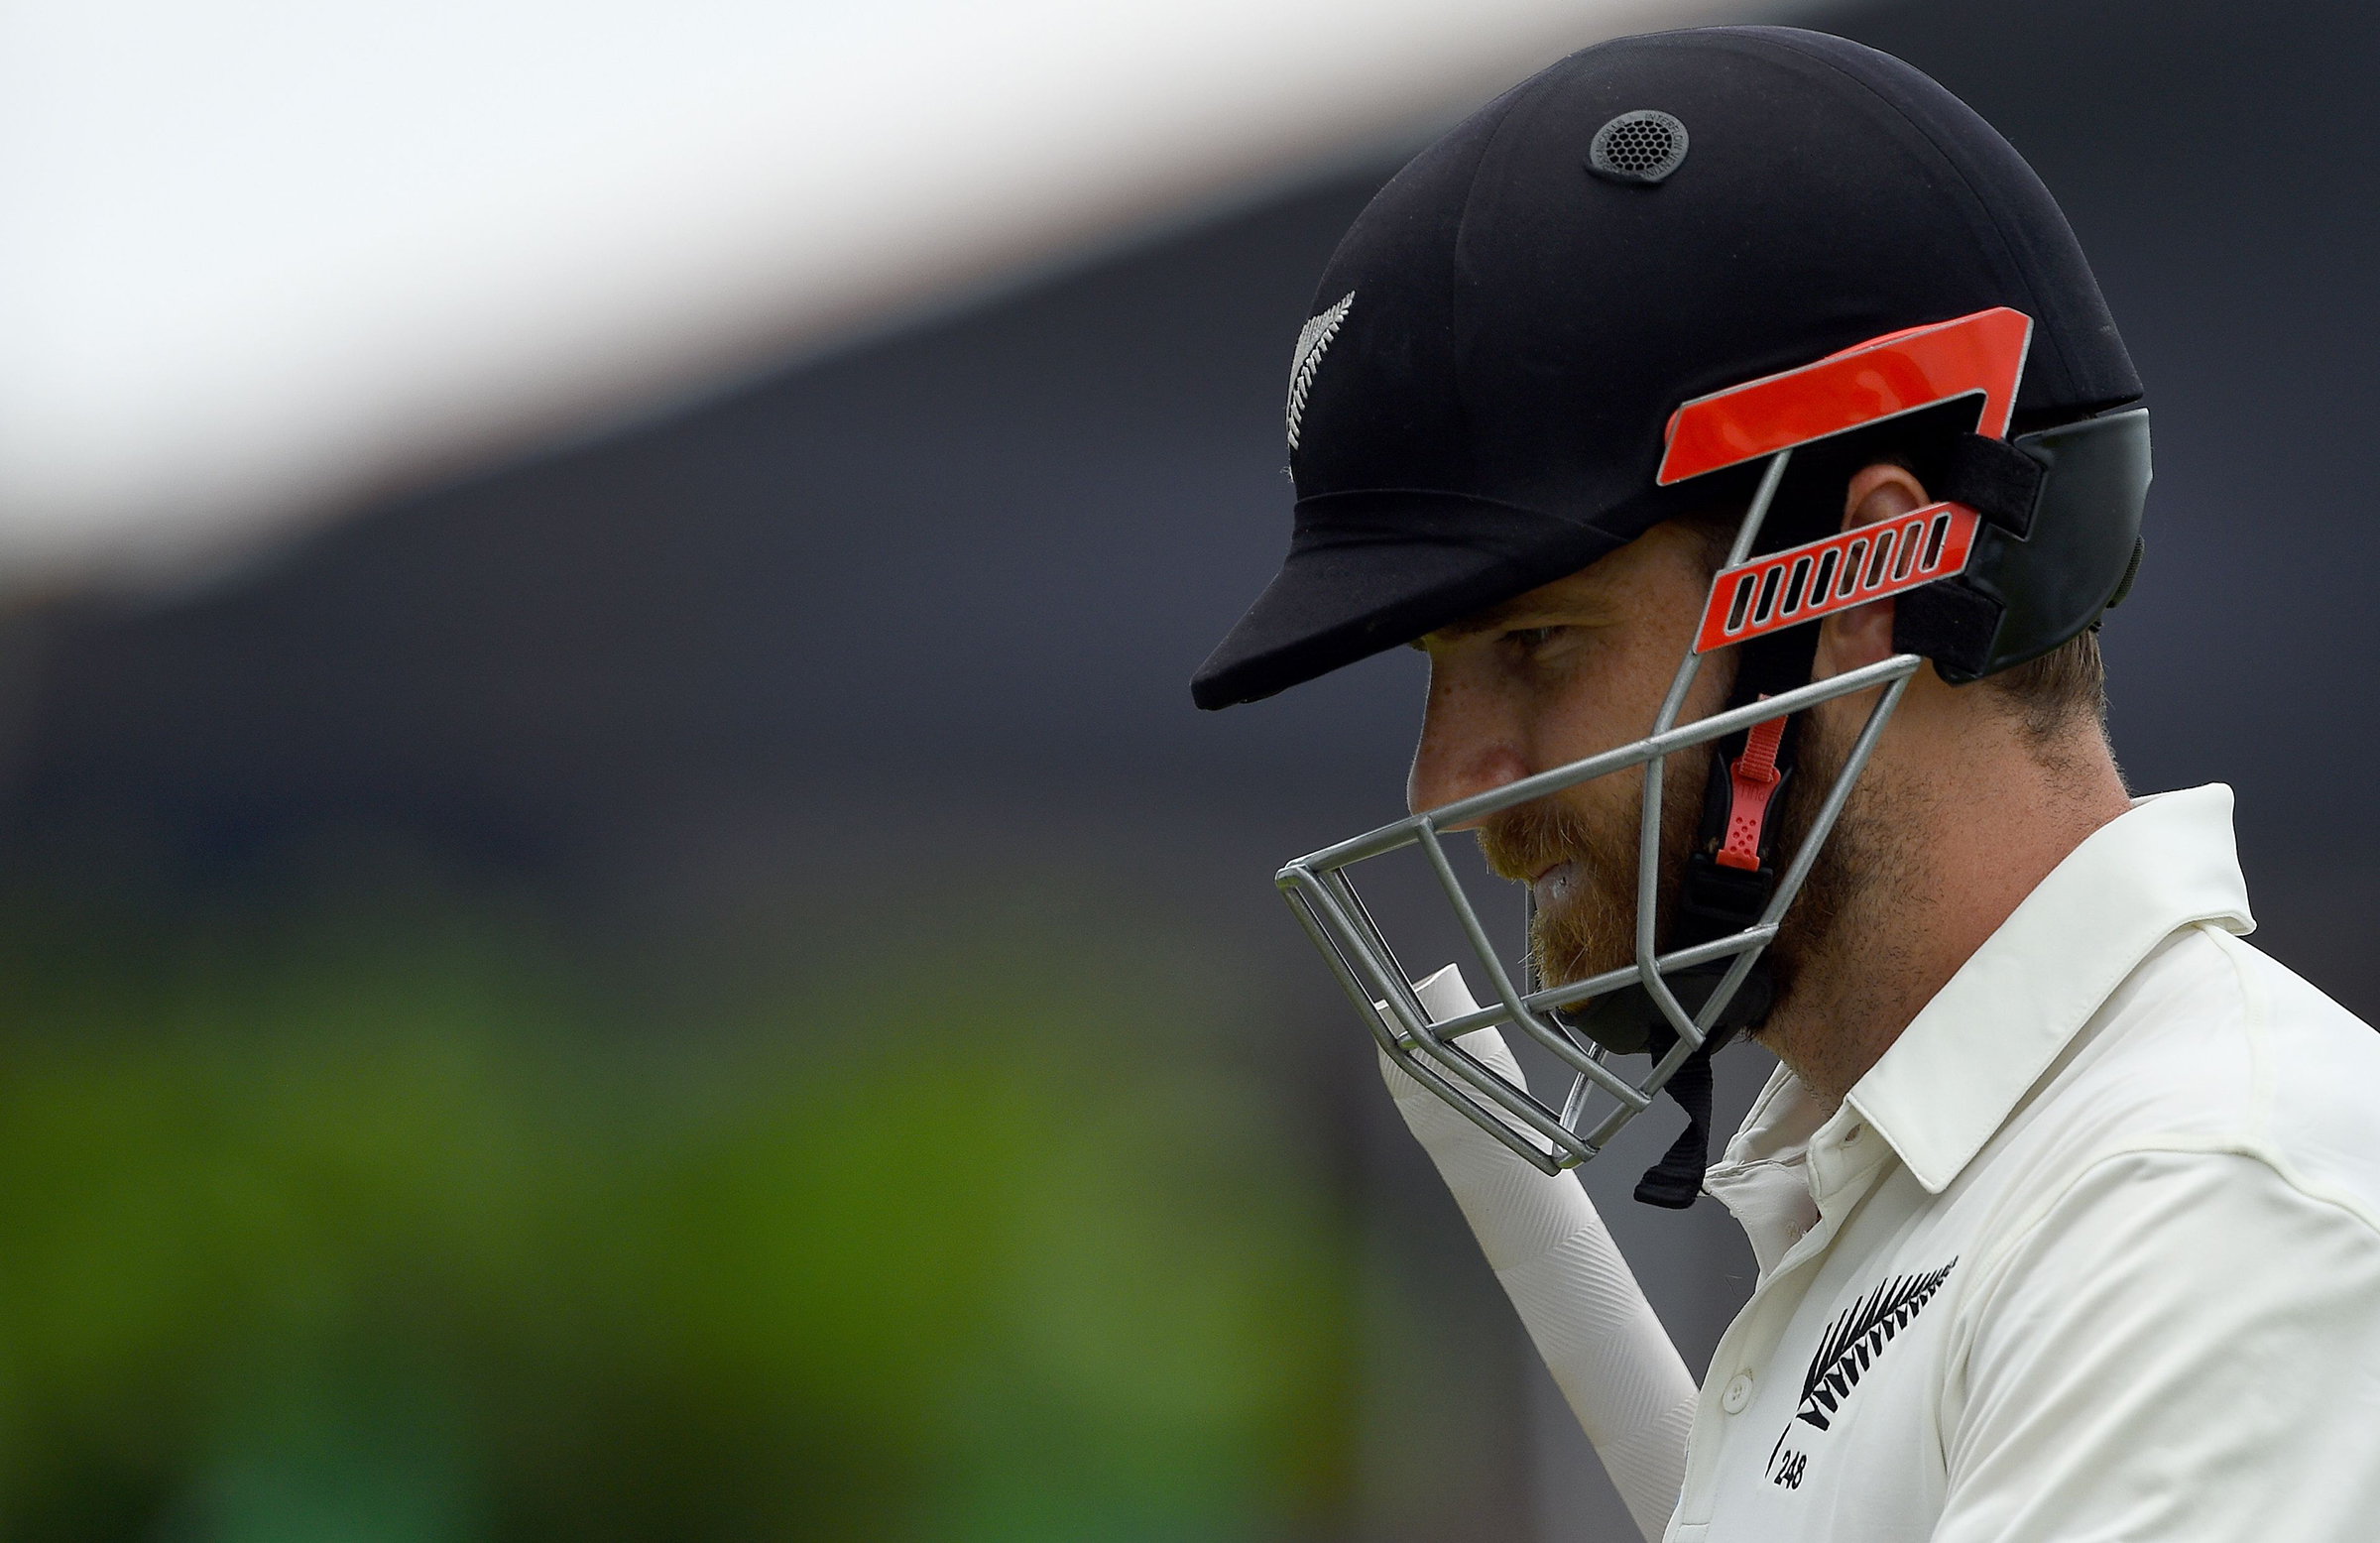 Williamson was dismissed for a duck // Getty